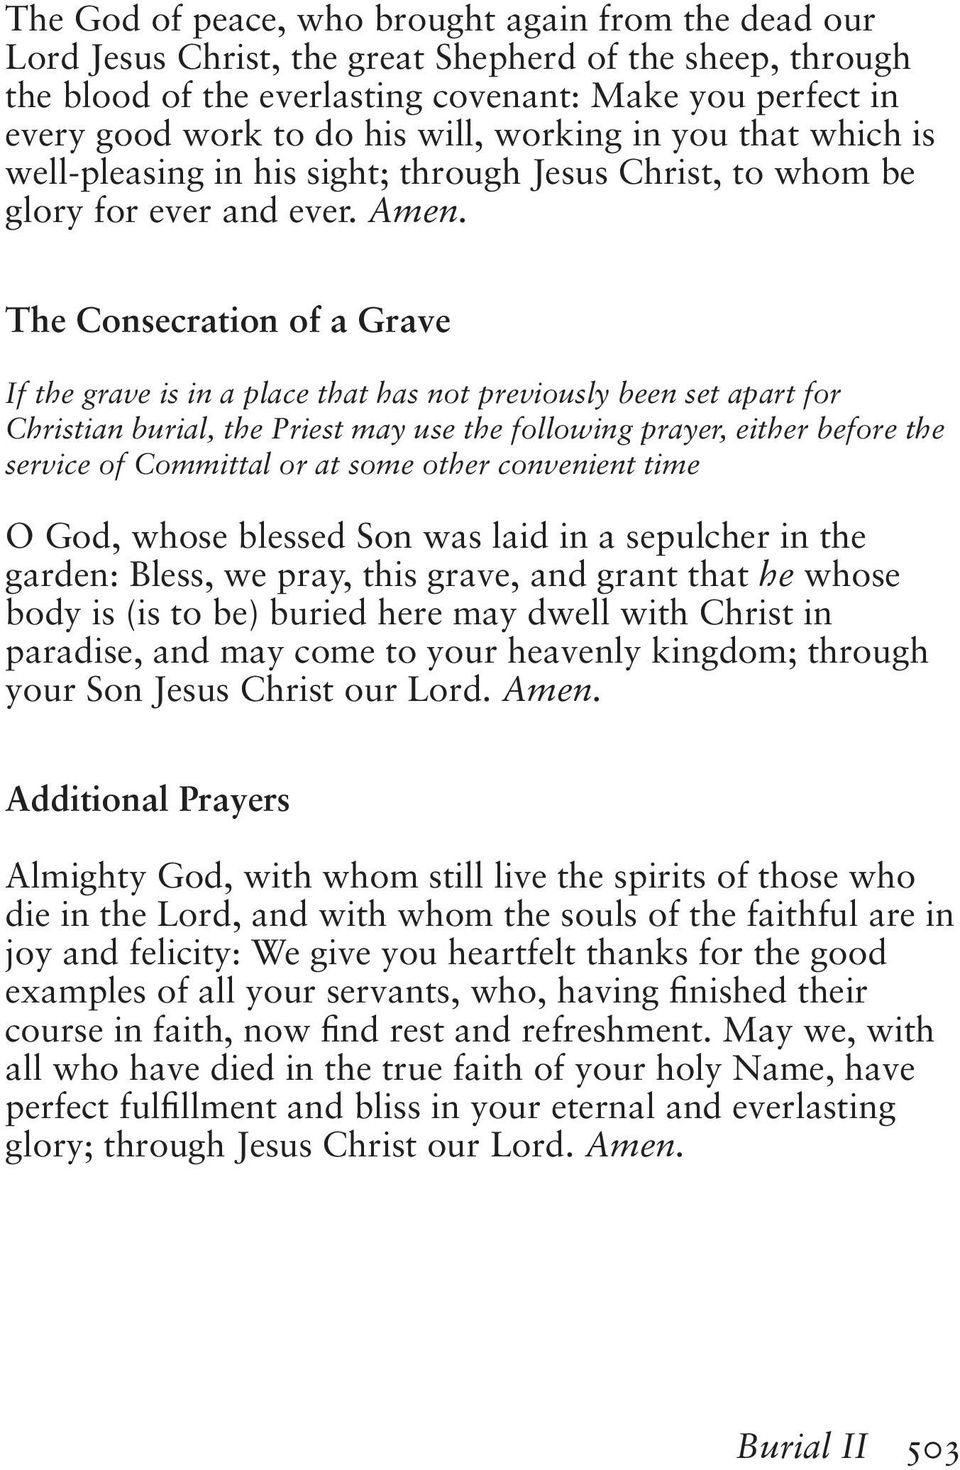 The Consecration of a Grave If the grave is in a place that has not previously been set apart for Christian burial, the Priest may use the following prayer, either before the service of Committal or